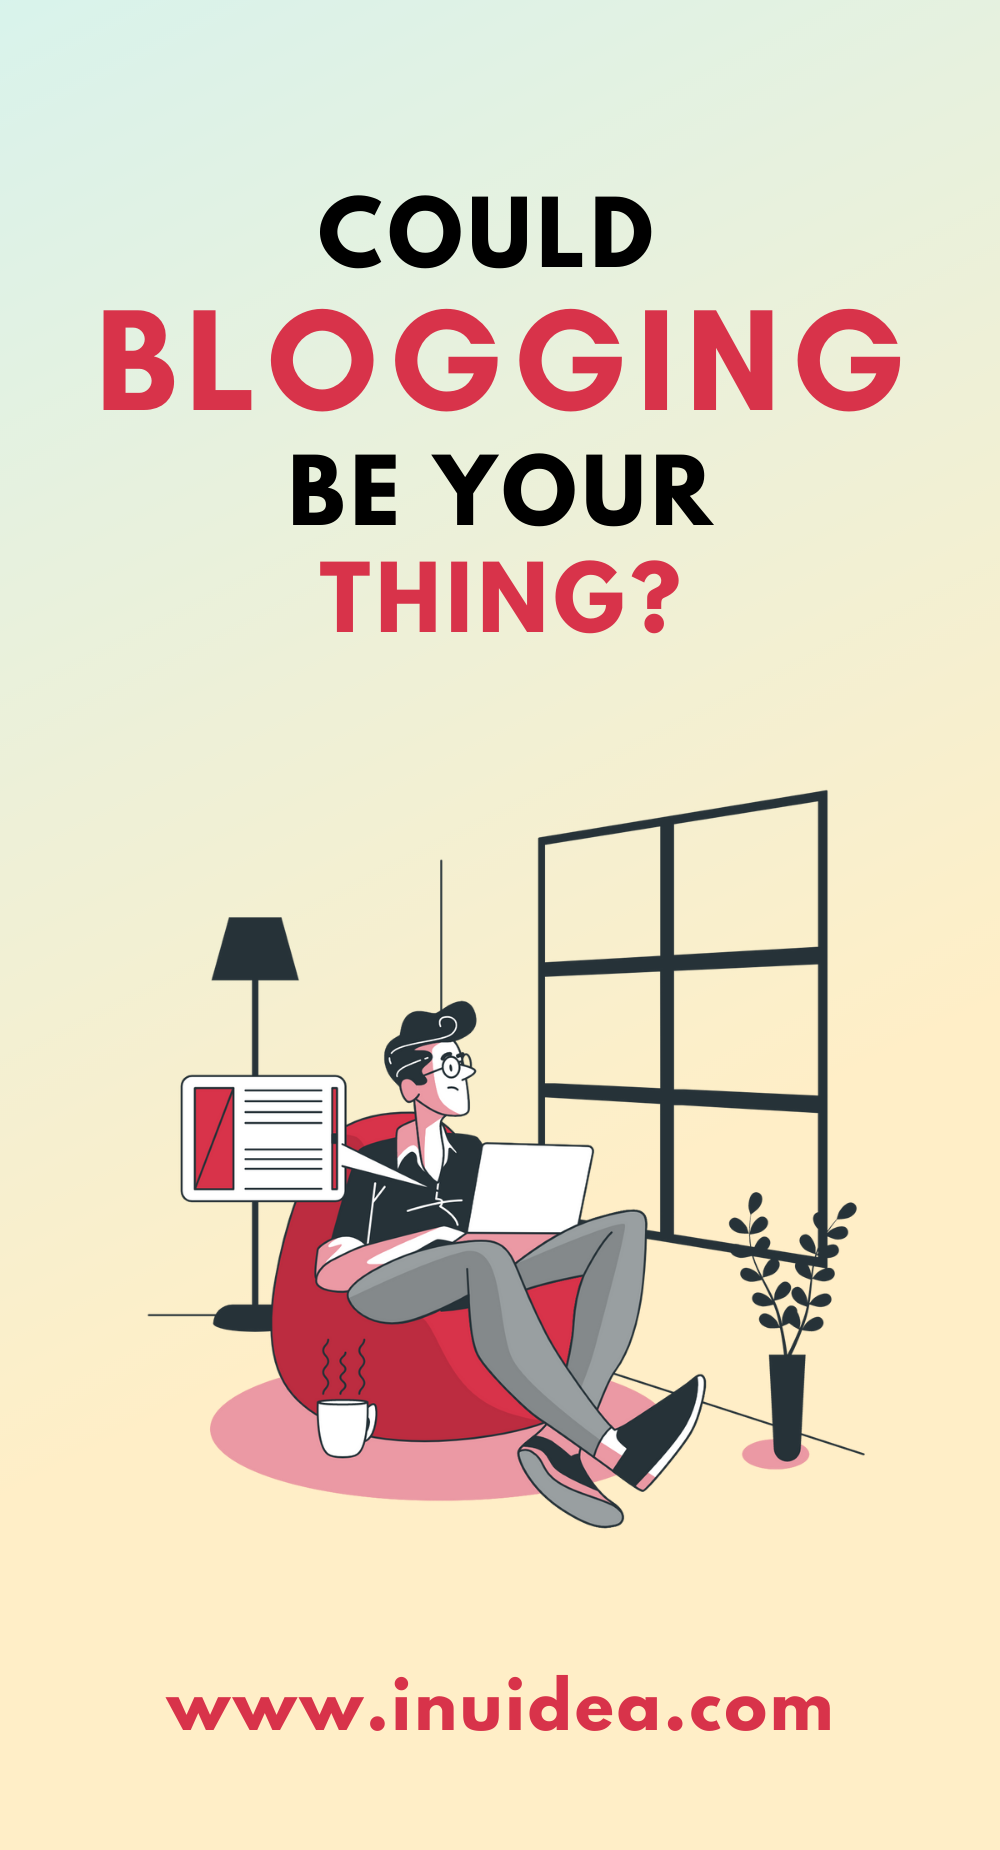 Could Blogging Be Your Thing?